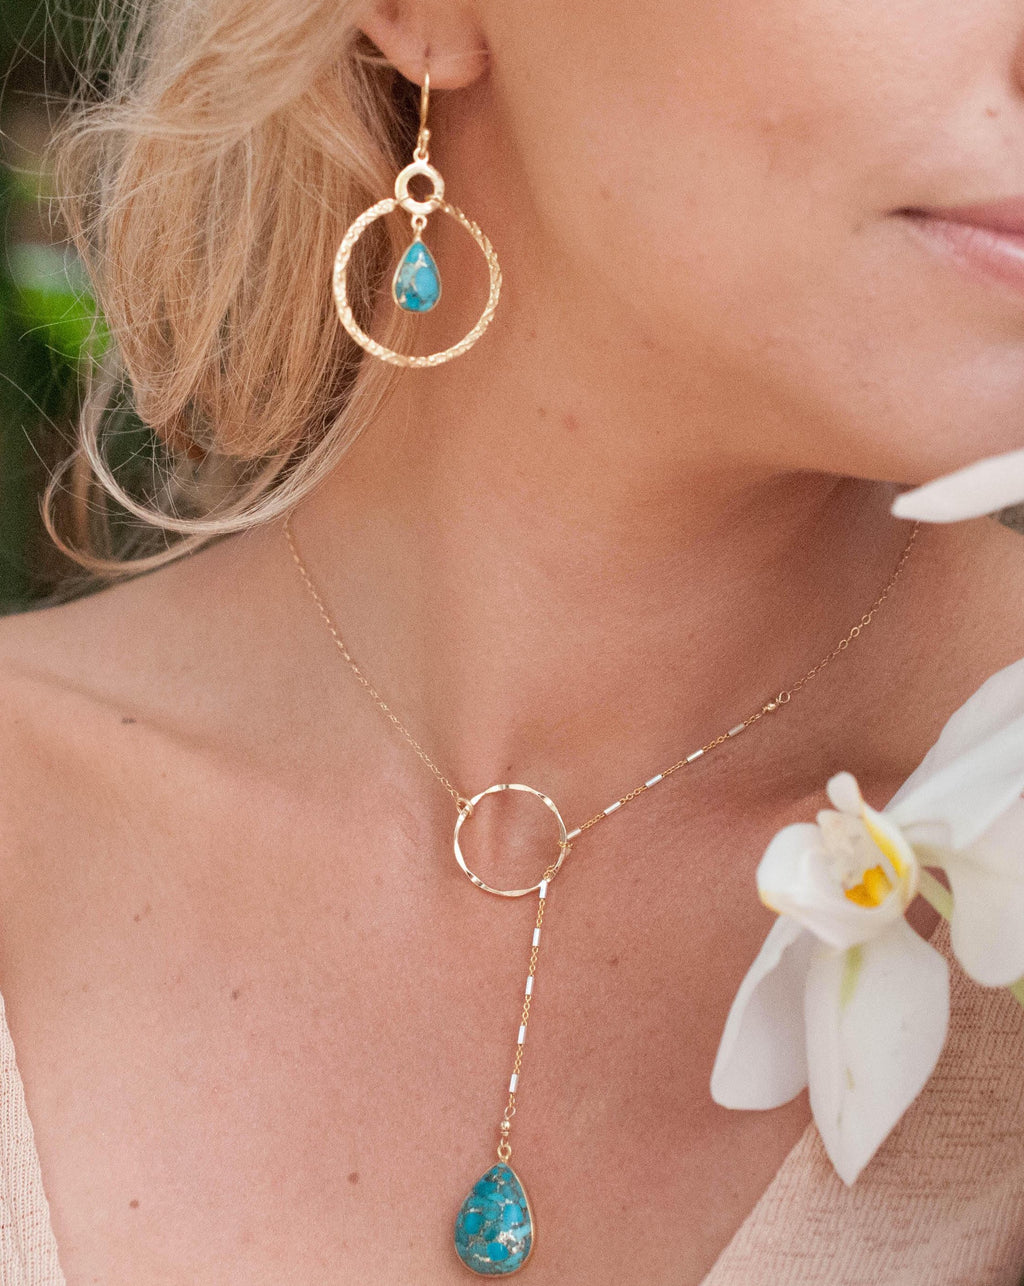 Chloe Earrings - Copper Turquoise (BJE004D)